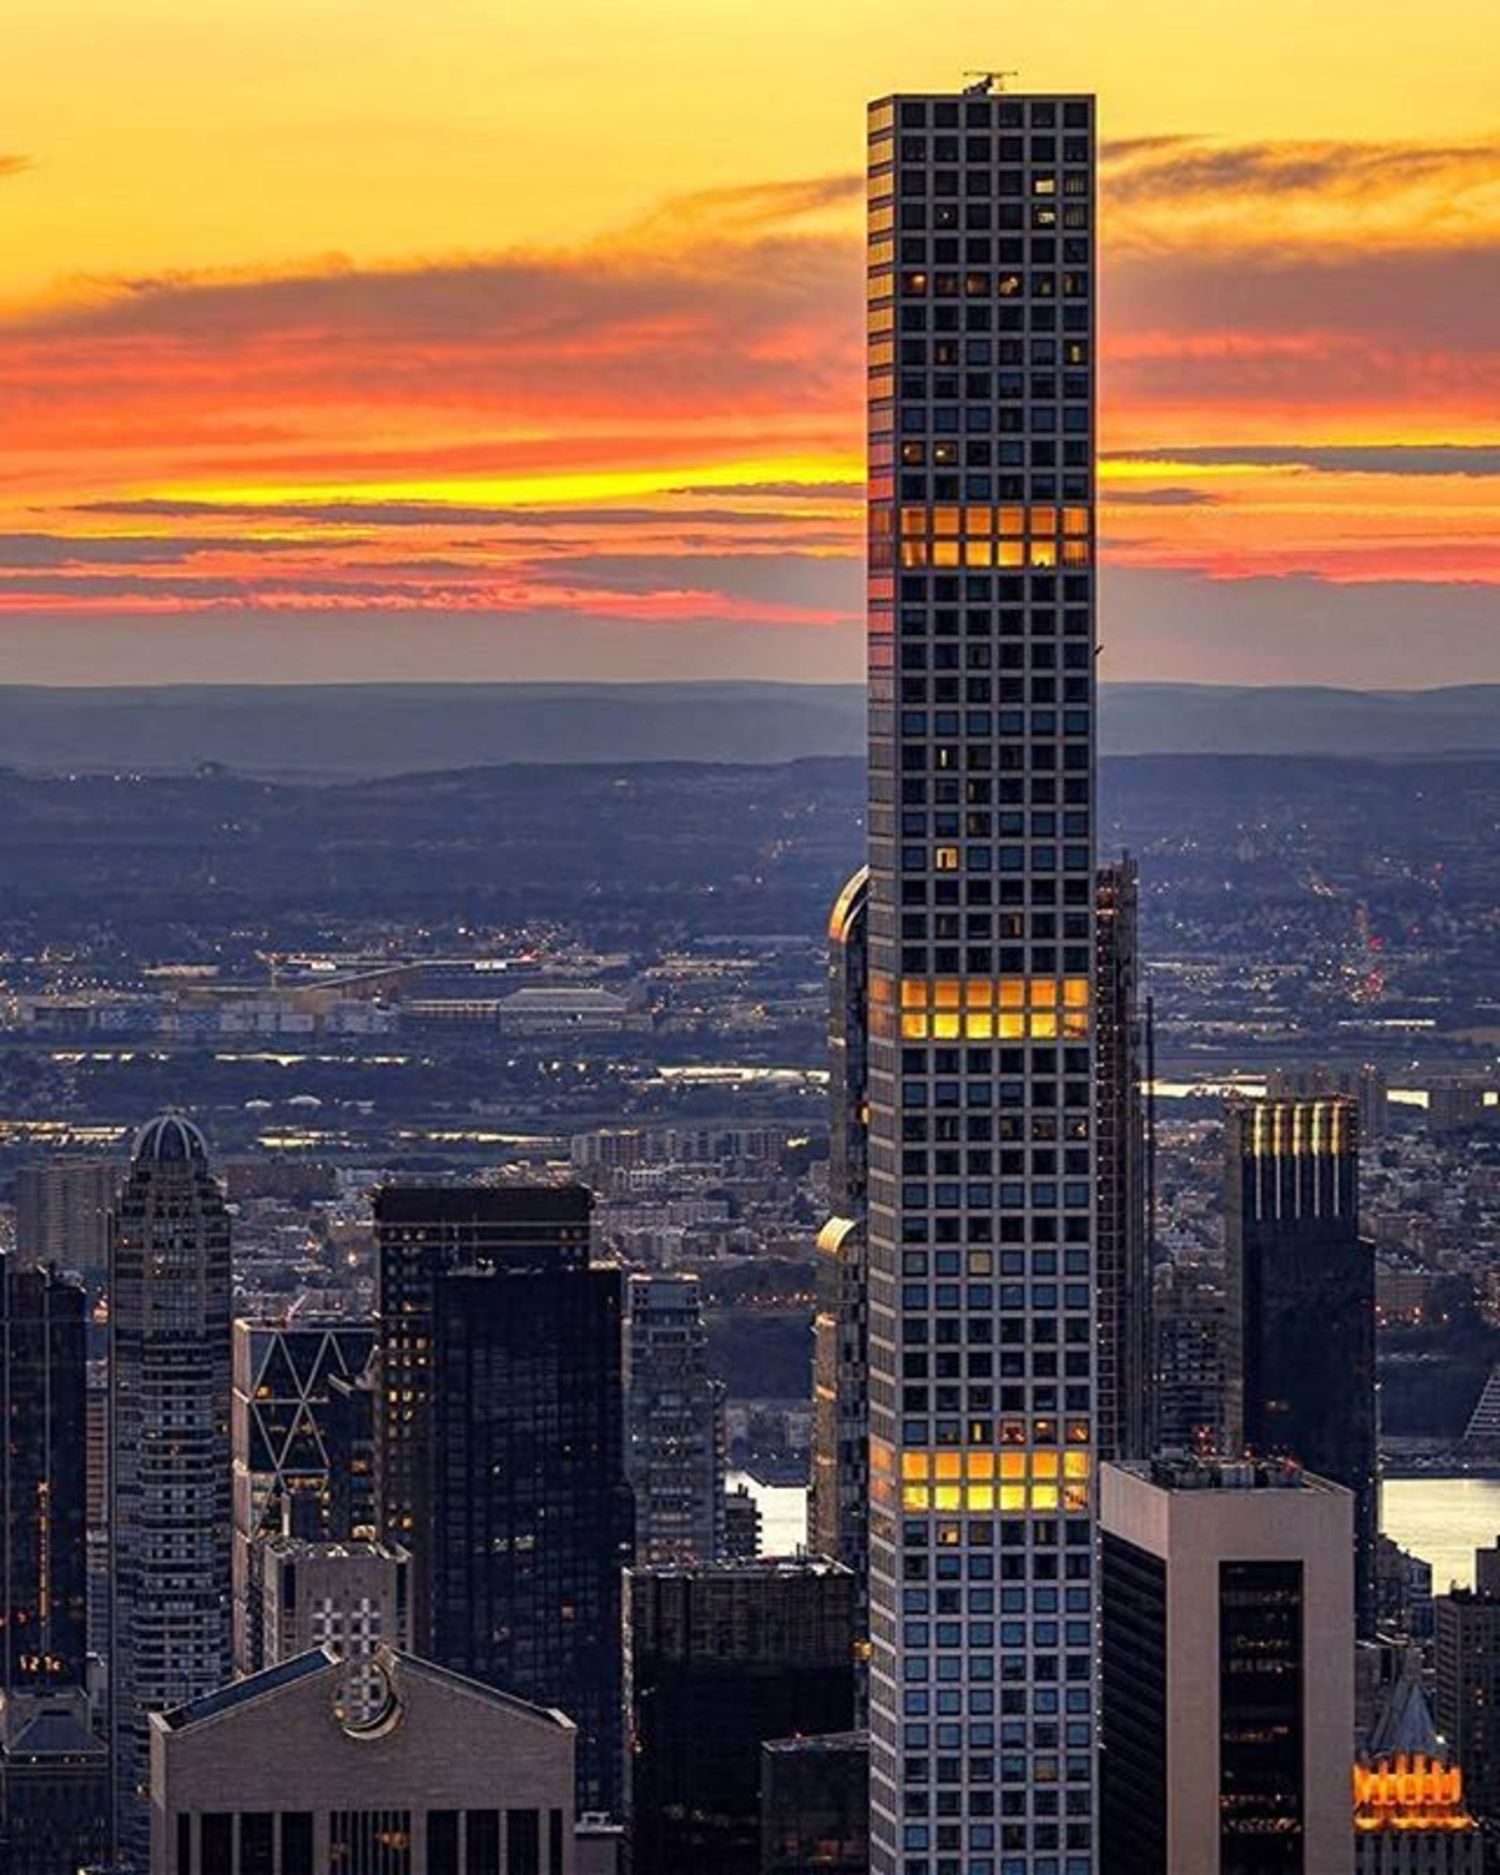 432 Park, New York, New York. Photo via @mattpugs #viewingnyc #newyorkcity #newyork